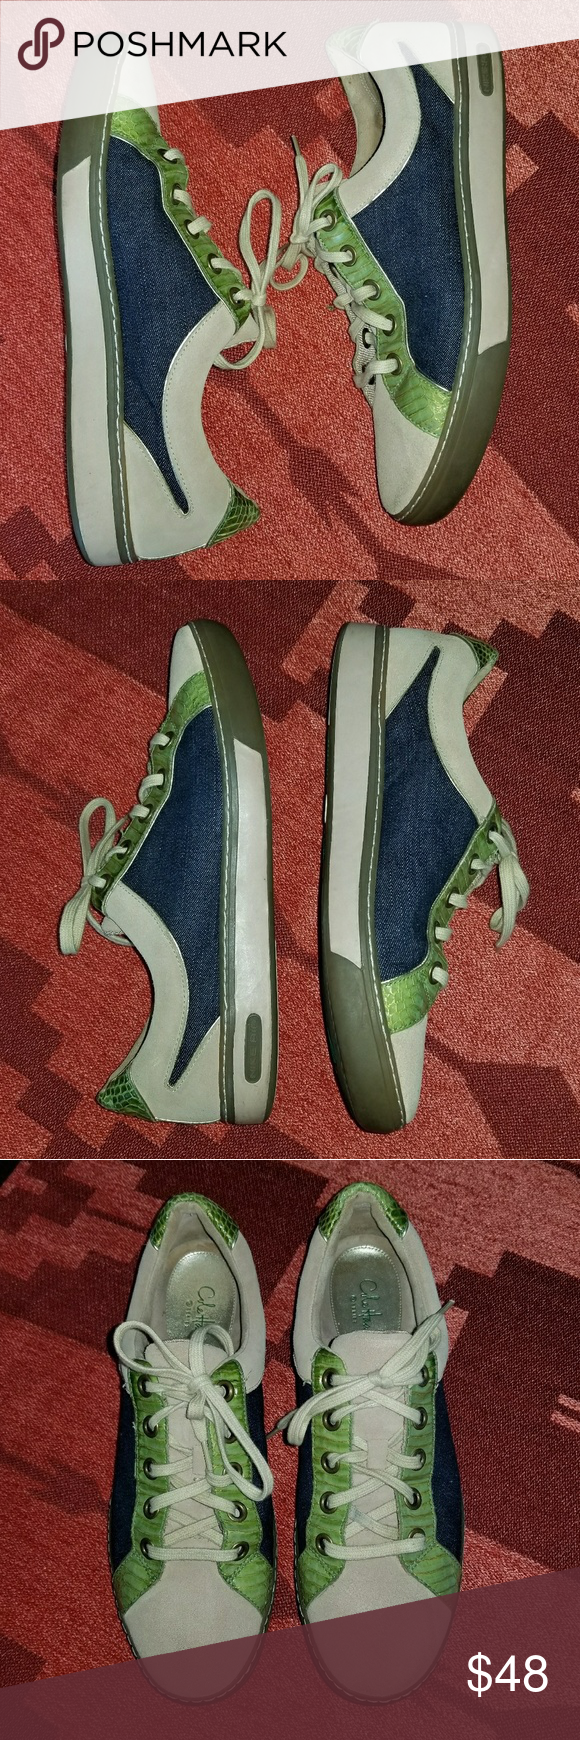 Cole Haan Nike Air Denim Lifestyle Shoe In good condition. Cole Haan Shoes Sneakers